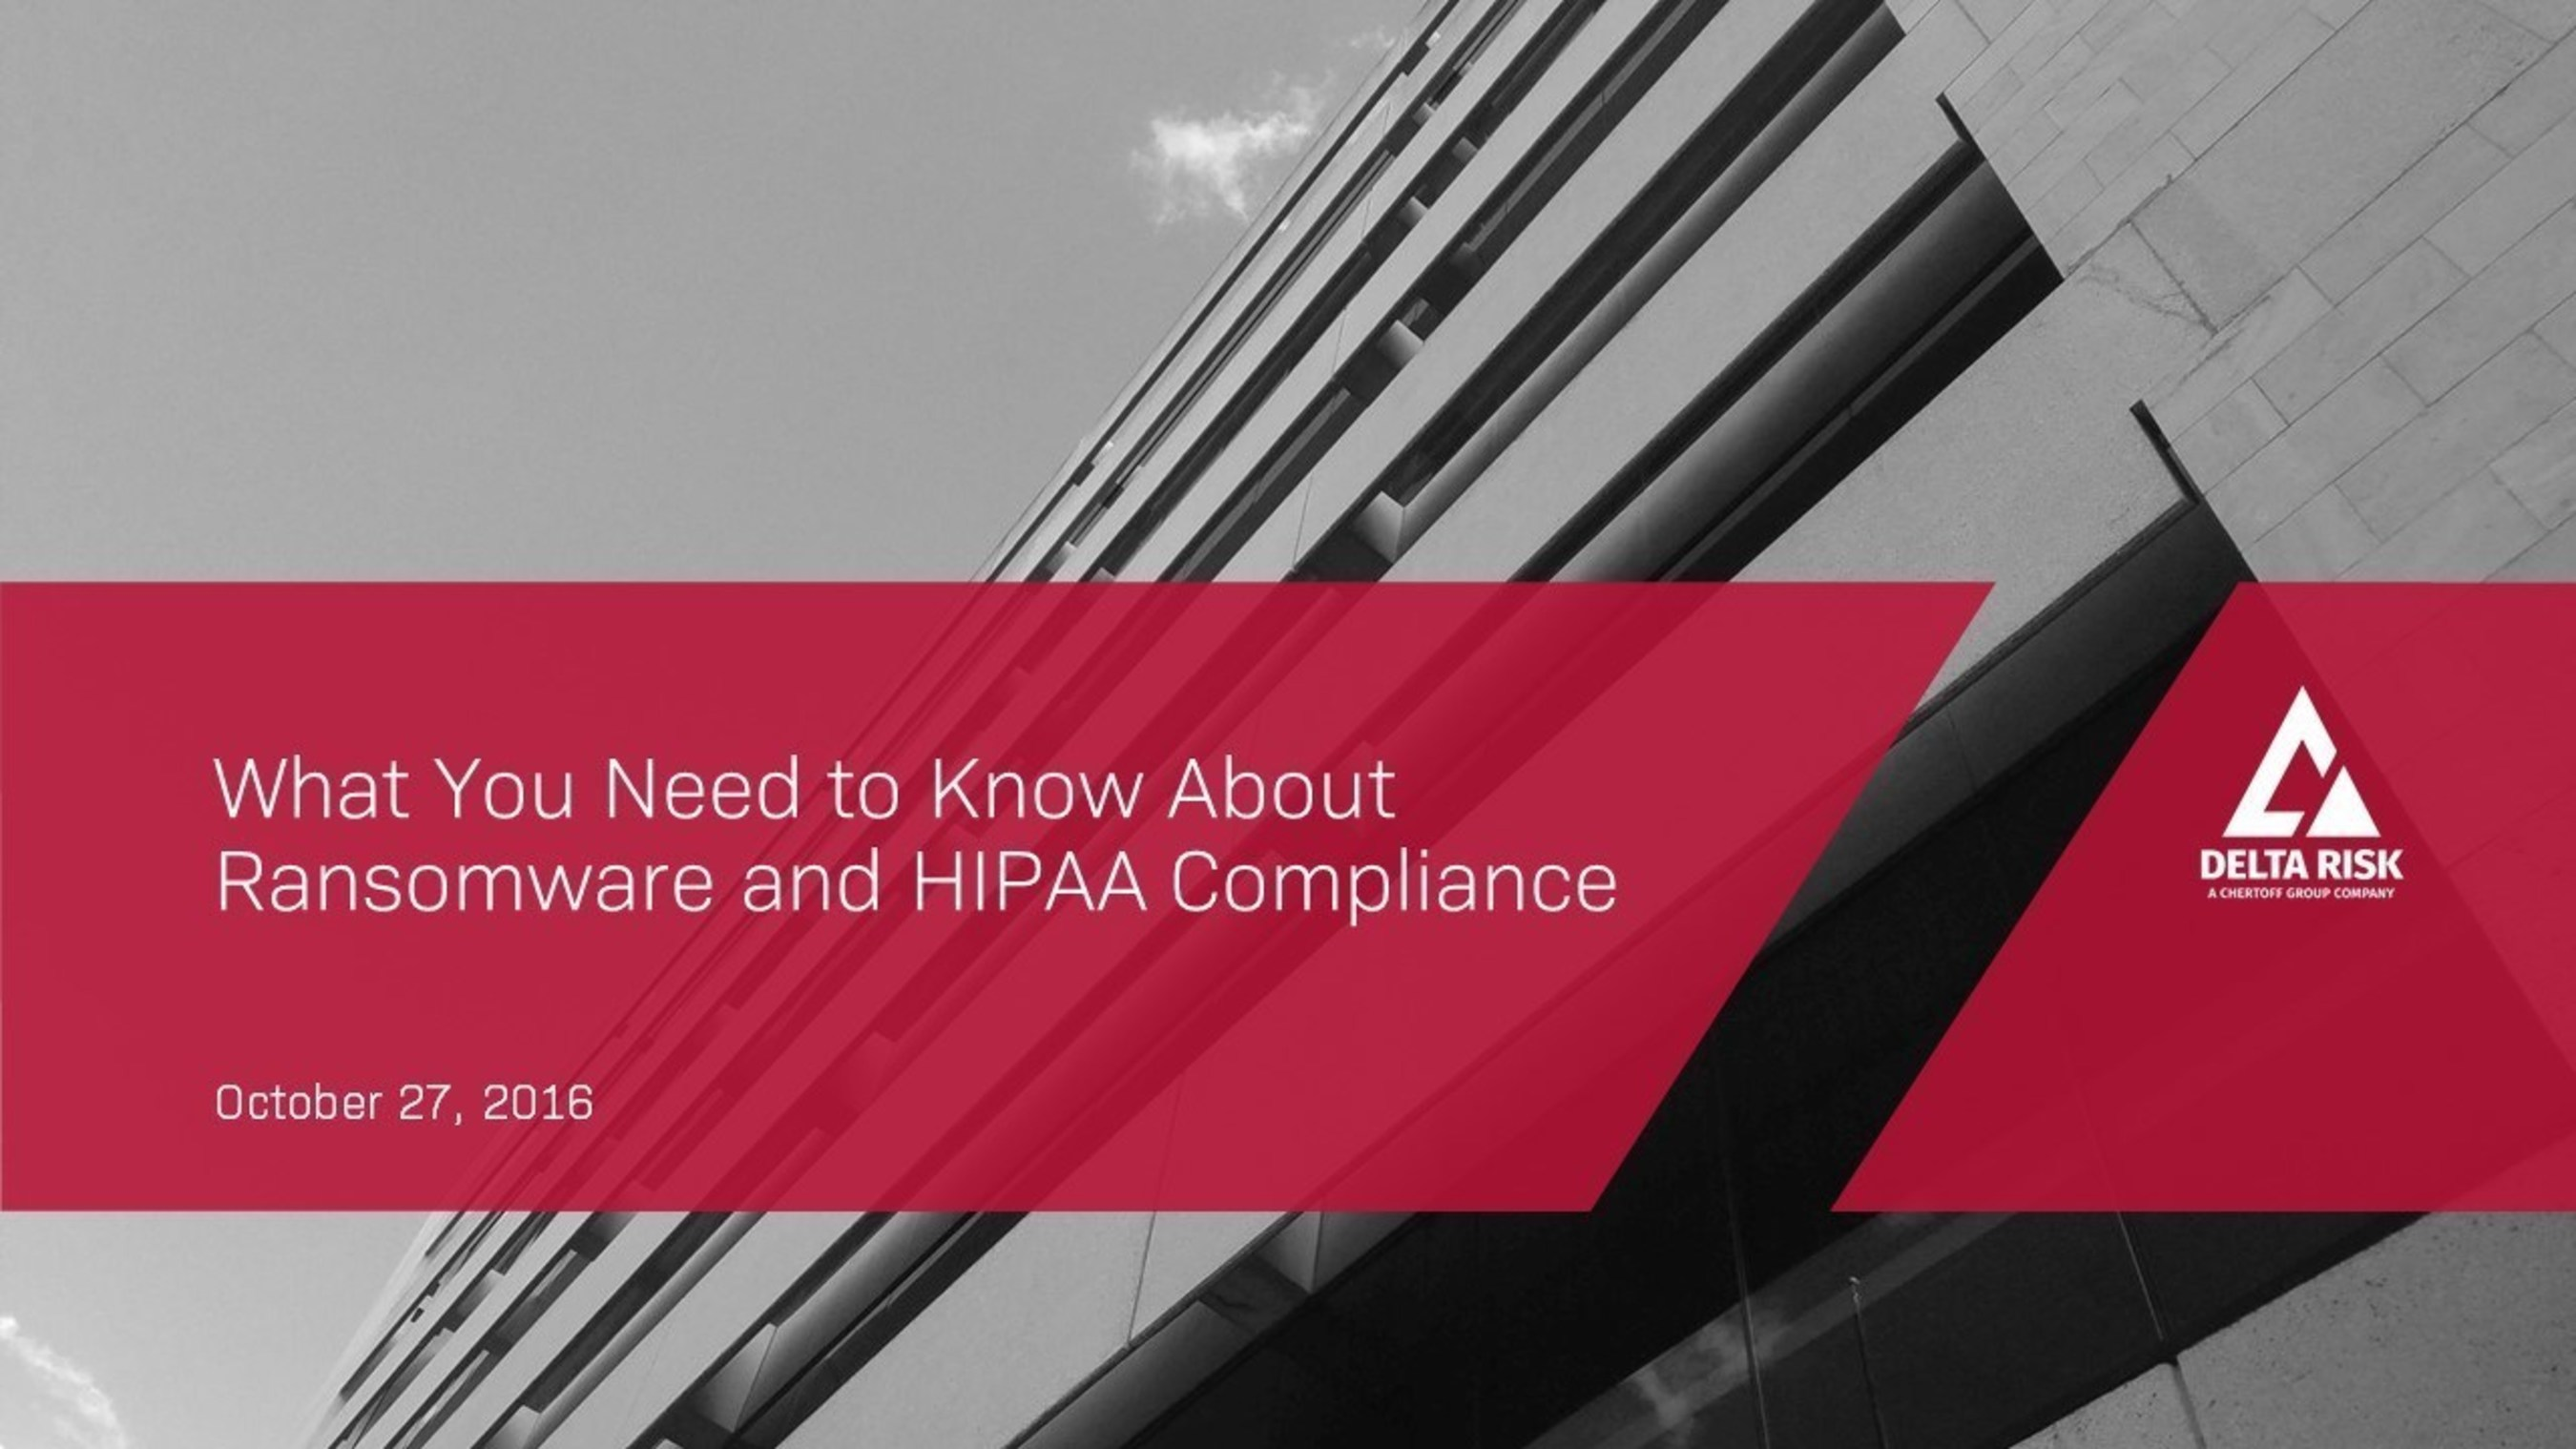 "Chris Hendricks, Vice President of Security Operations for Delta Risk, will be joined by Garrett Gross, Director of Field Enablement for AlienVault, for the live webinar, ""What You Need to Know About Ransomware and HIPAA Compliance."" The two will discuss the financial and regulatory impact of ransomware attacks, and a strategy to address them that includes awareness training, exercises, and an incident response plan; tools for vulnerability assessment, asset discovery, audits, and backup tests; and how to use monitoring, analysis, and compromise assessments."